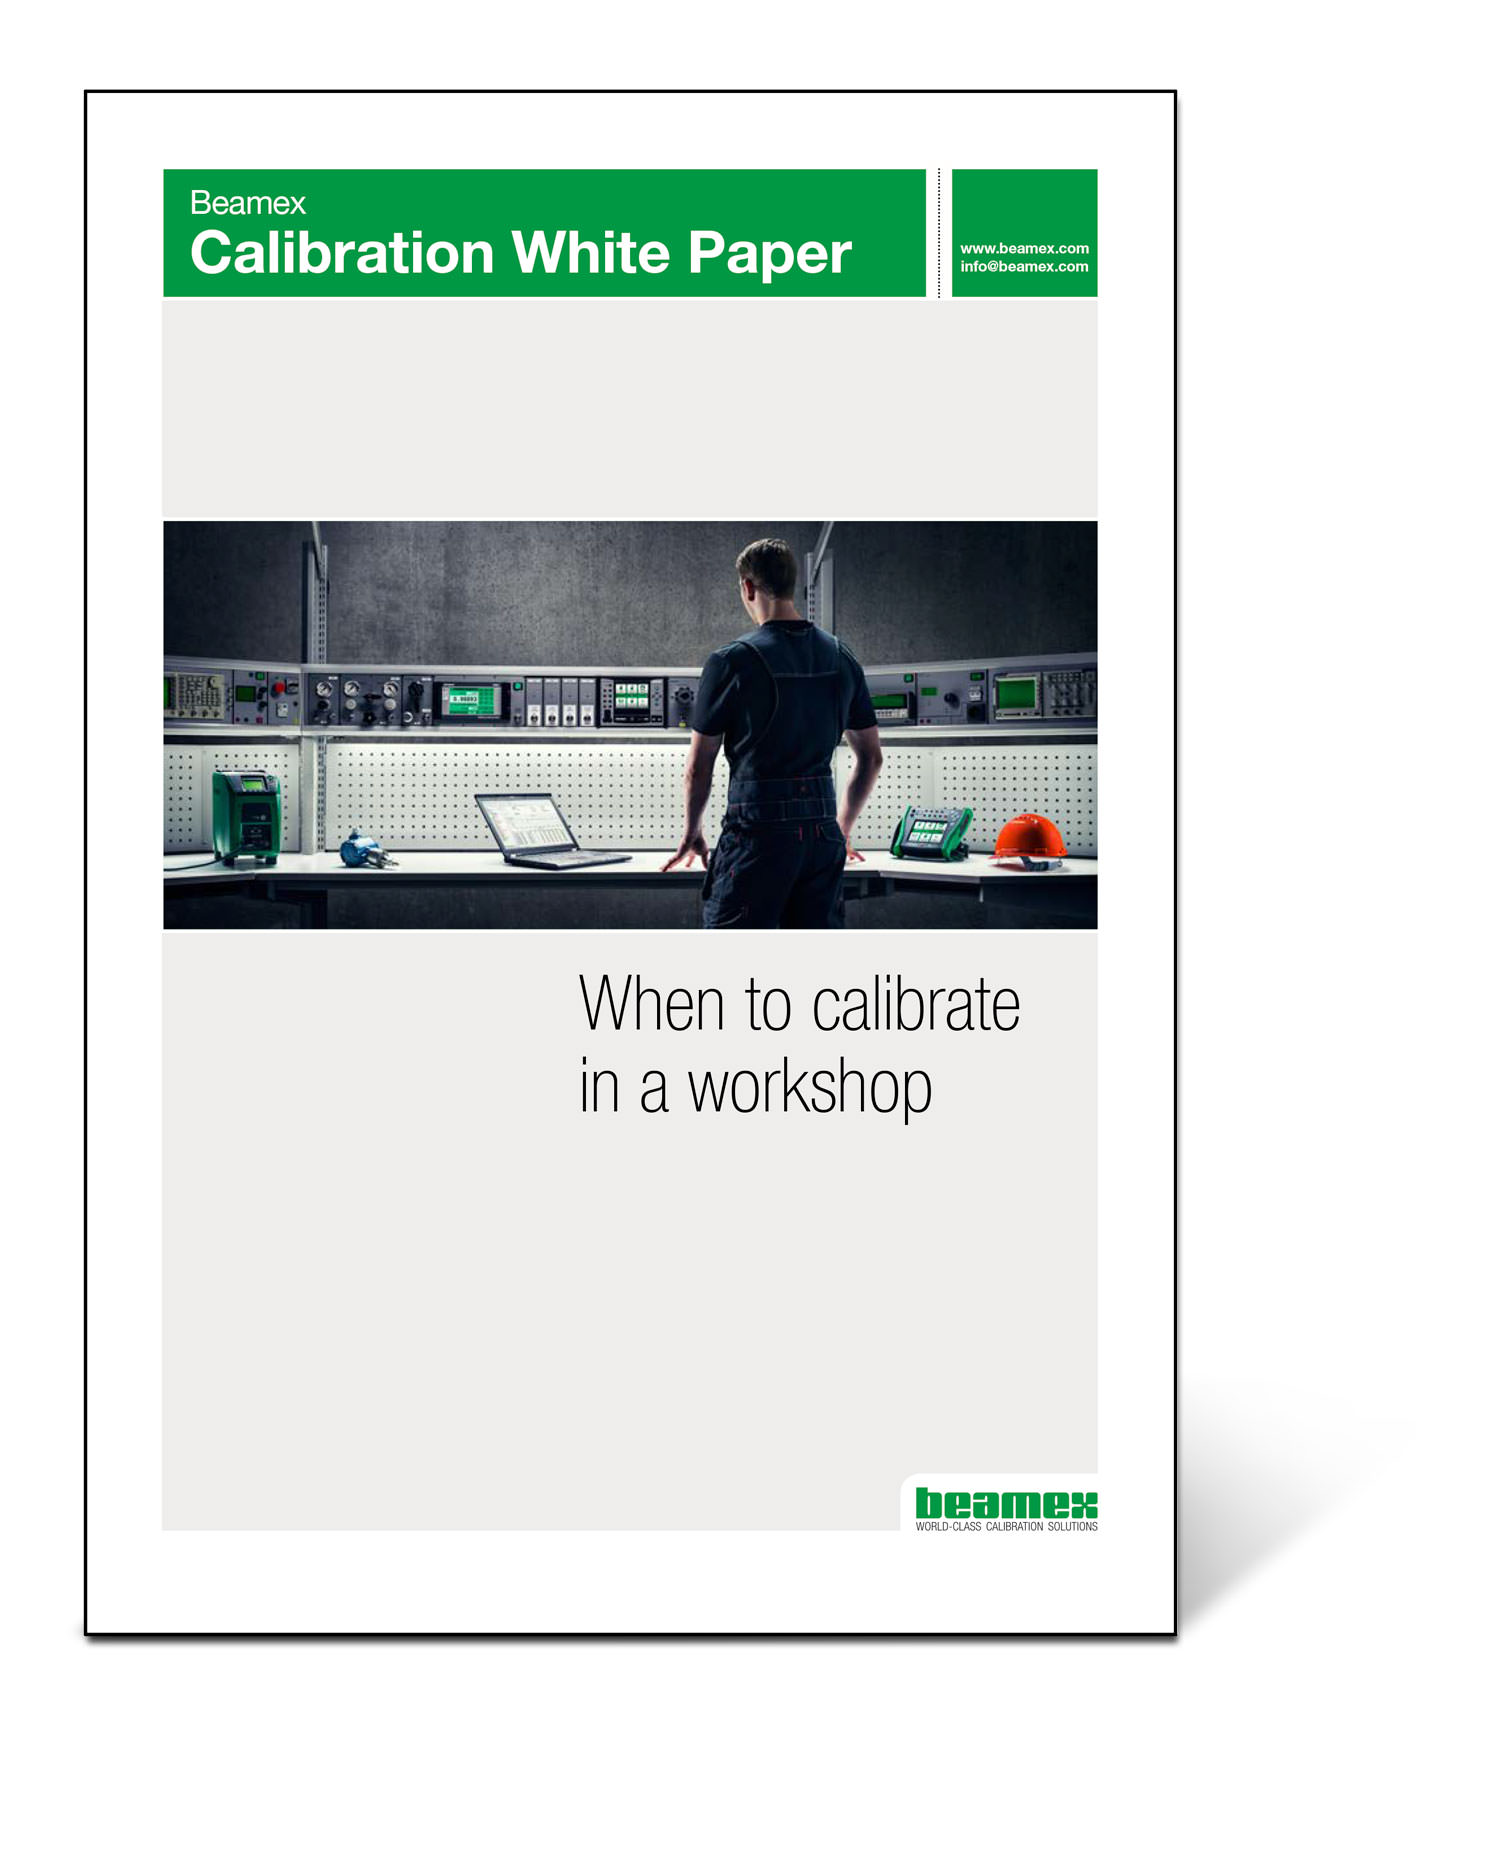 When to calibrate in a workshop, Beamex white paper